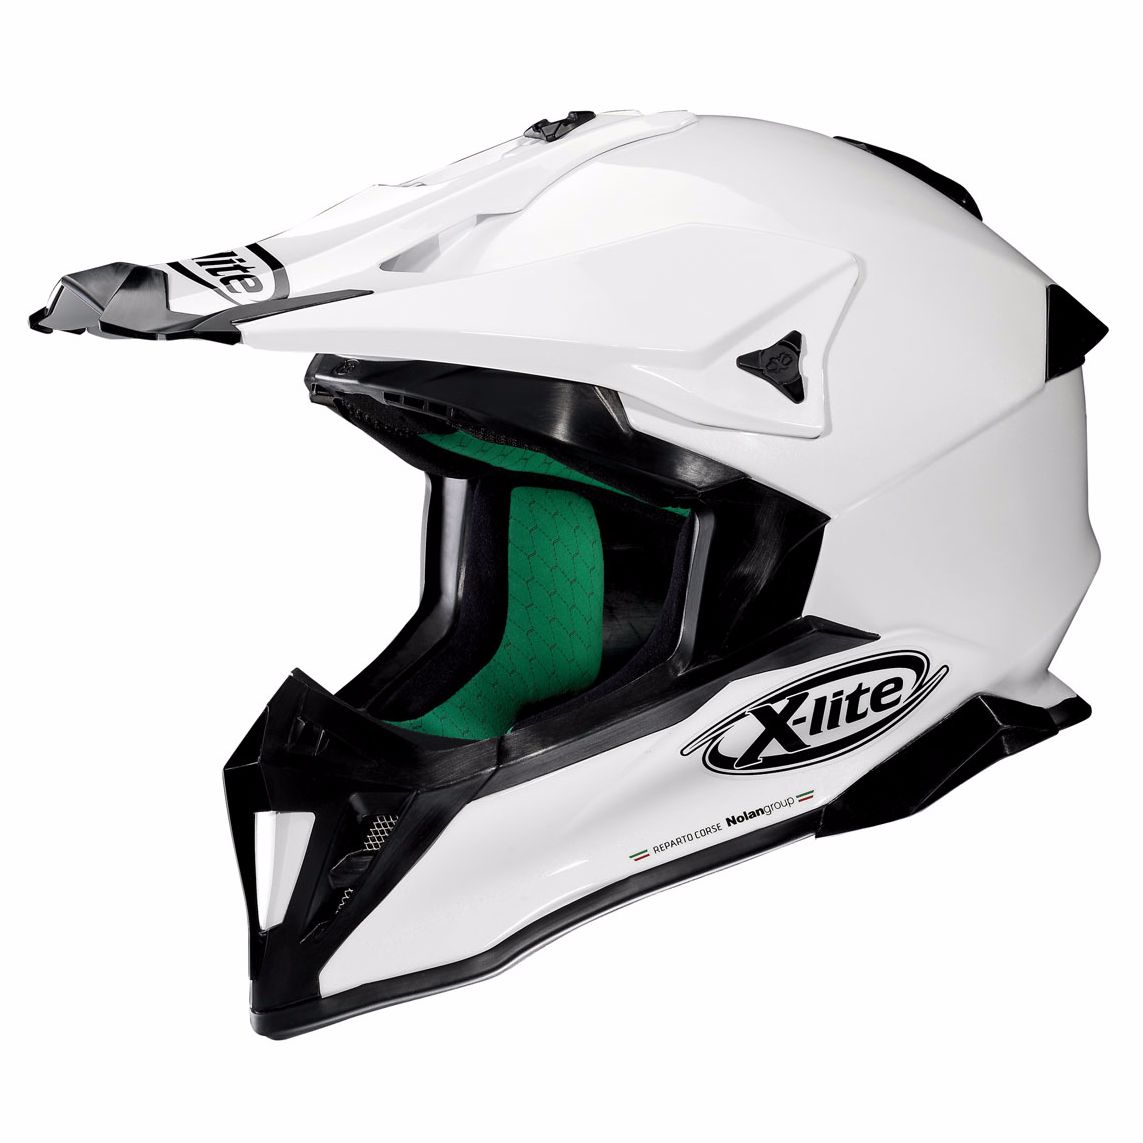 Casque Cross X-lite X-502 - Start Metal White 3